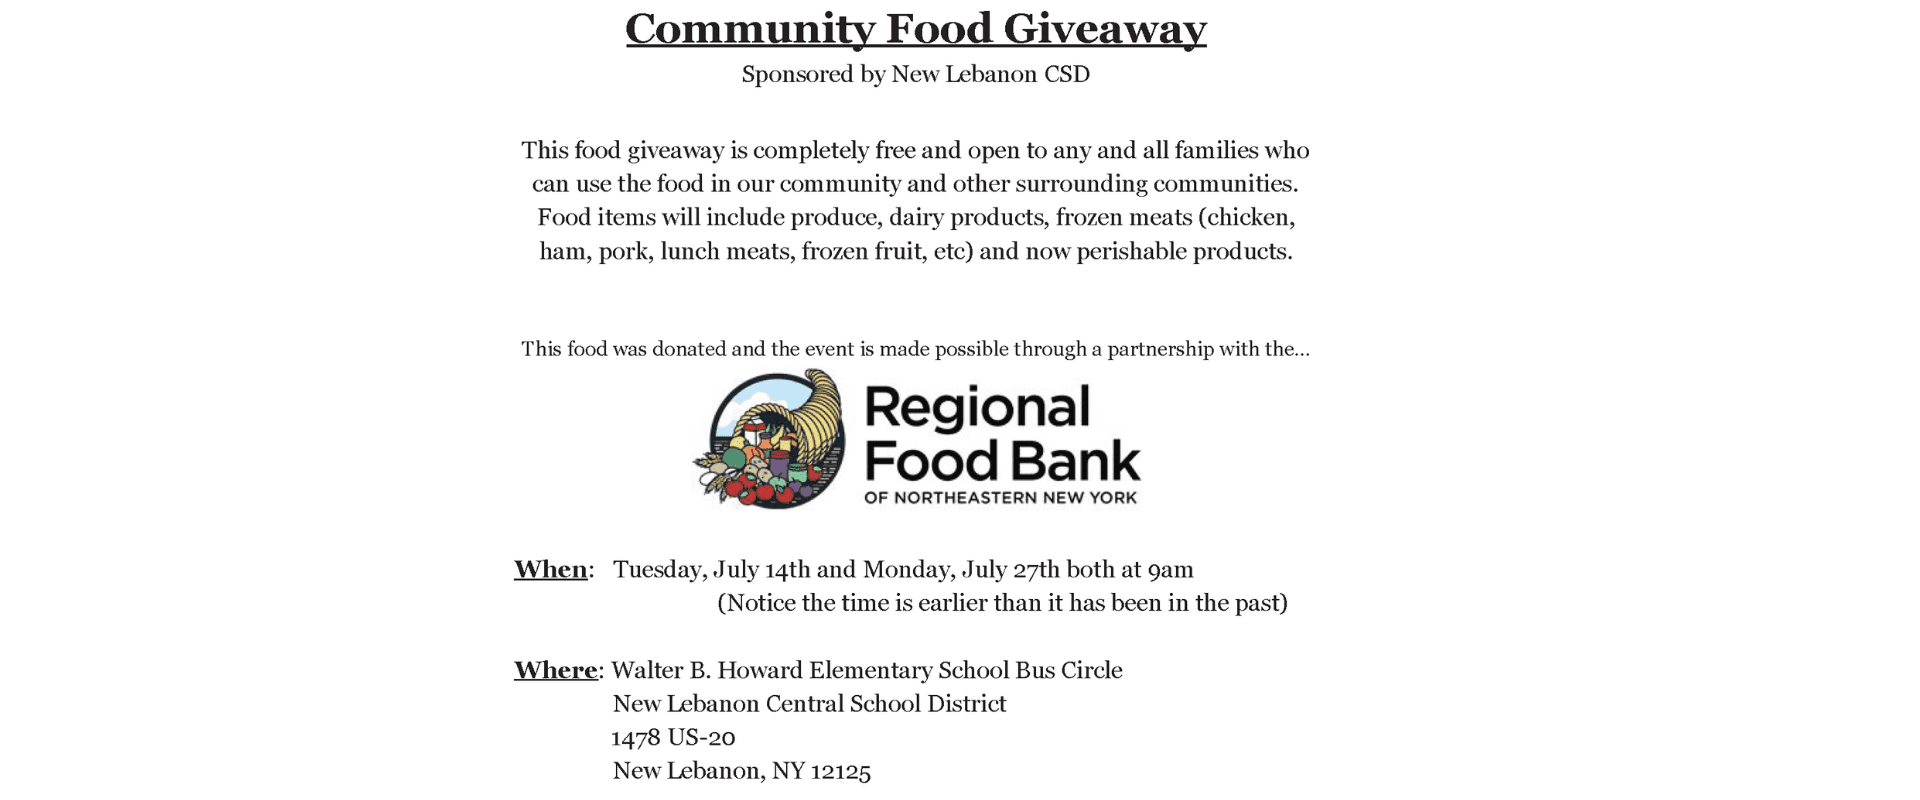 New Lebanon Food Giveaway on July 14 and 27